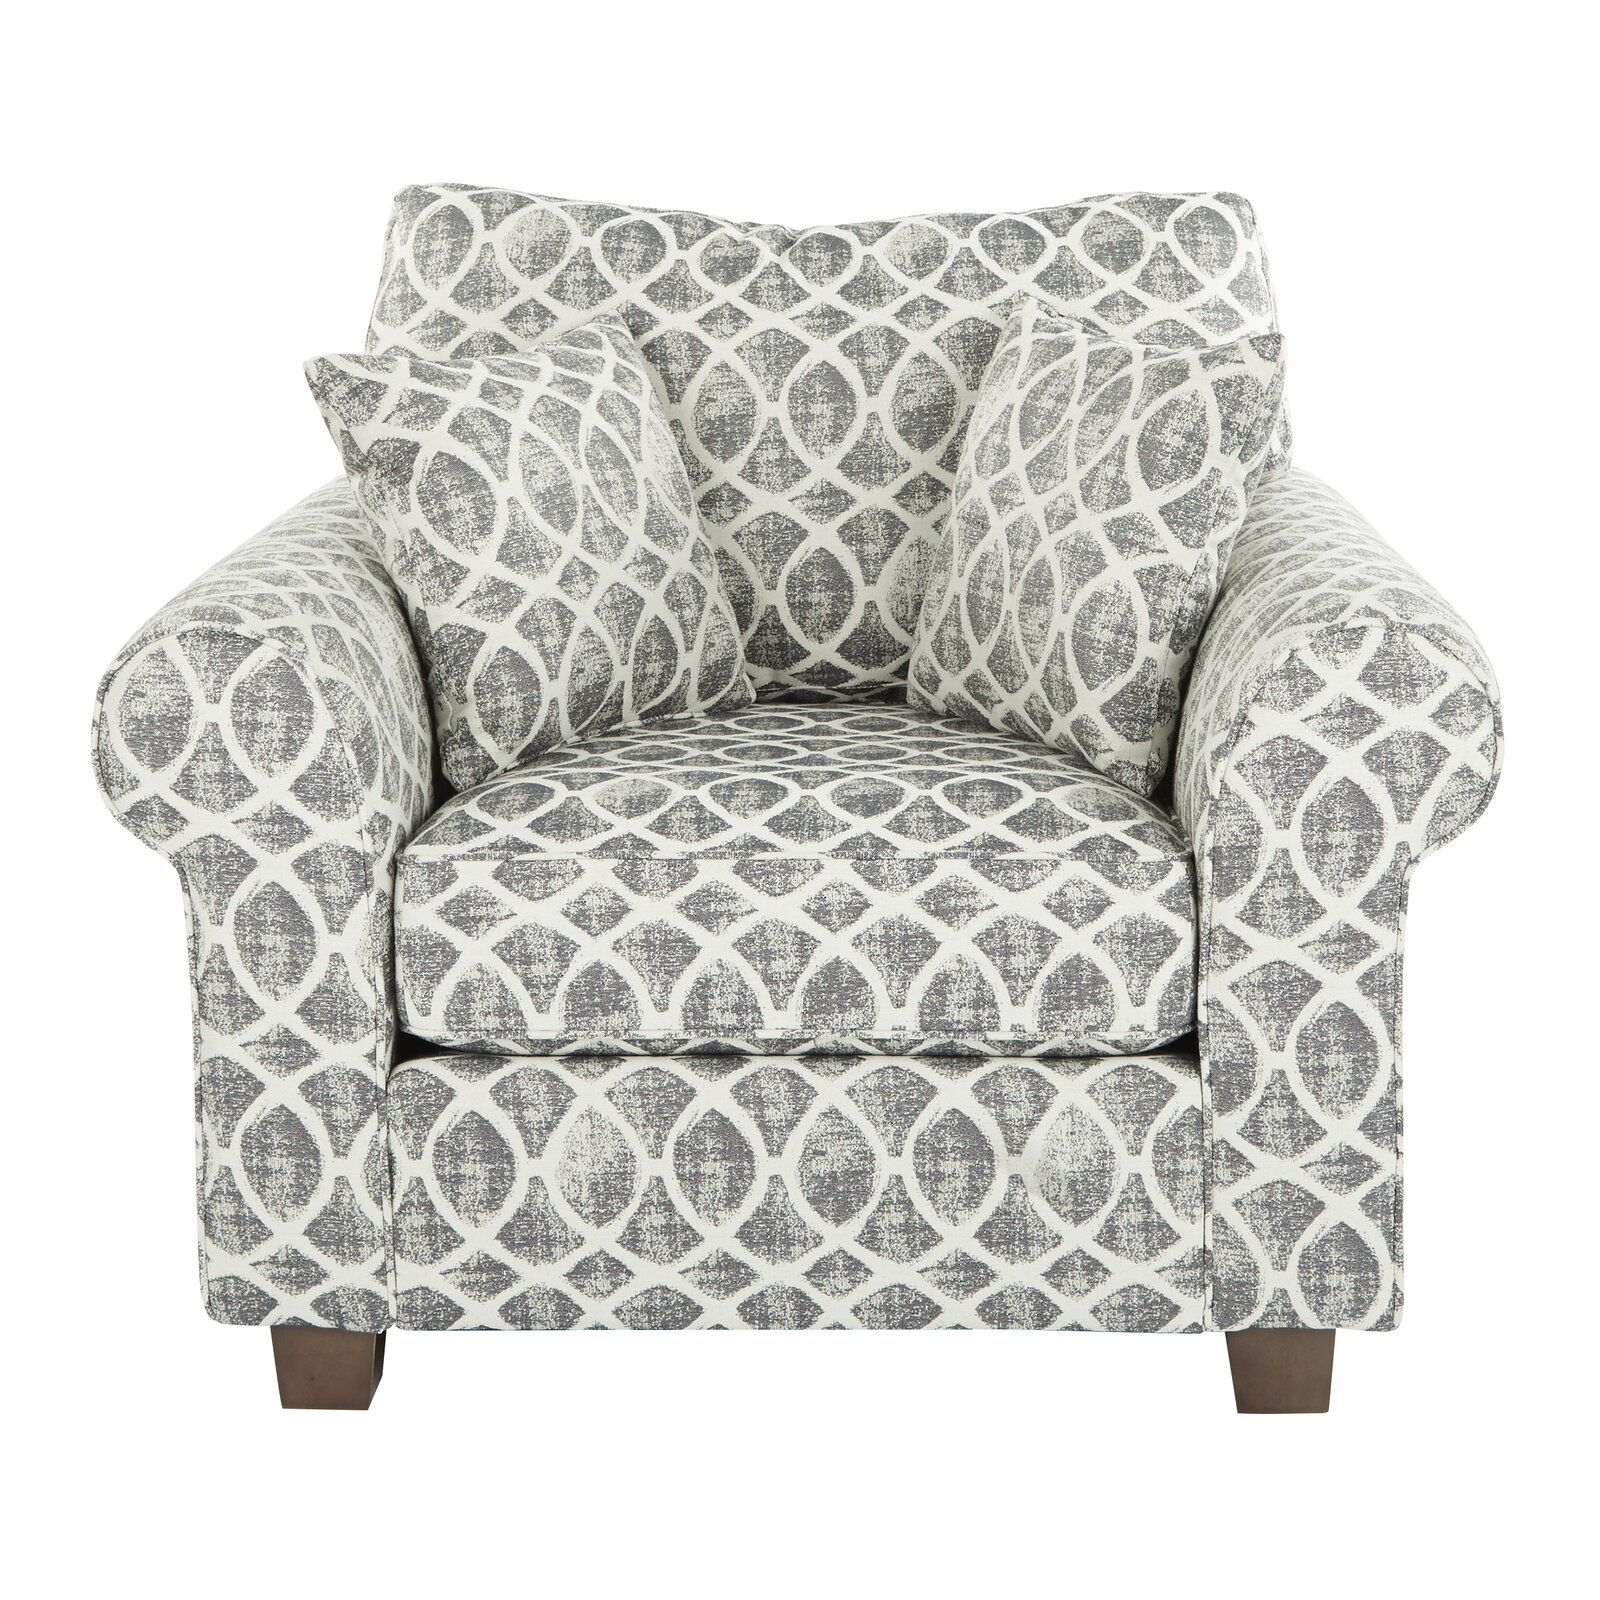 Darby Home Co Border Rolled Armchair  Wayfair  Accent chairs